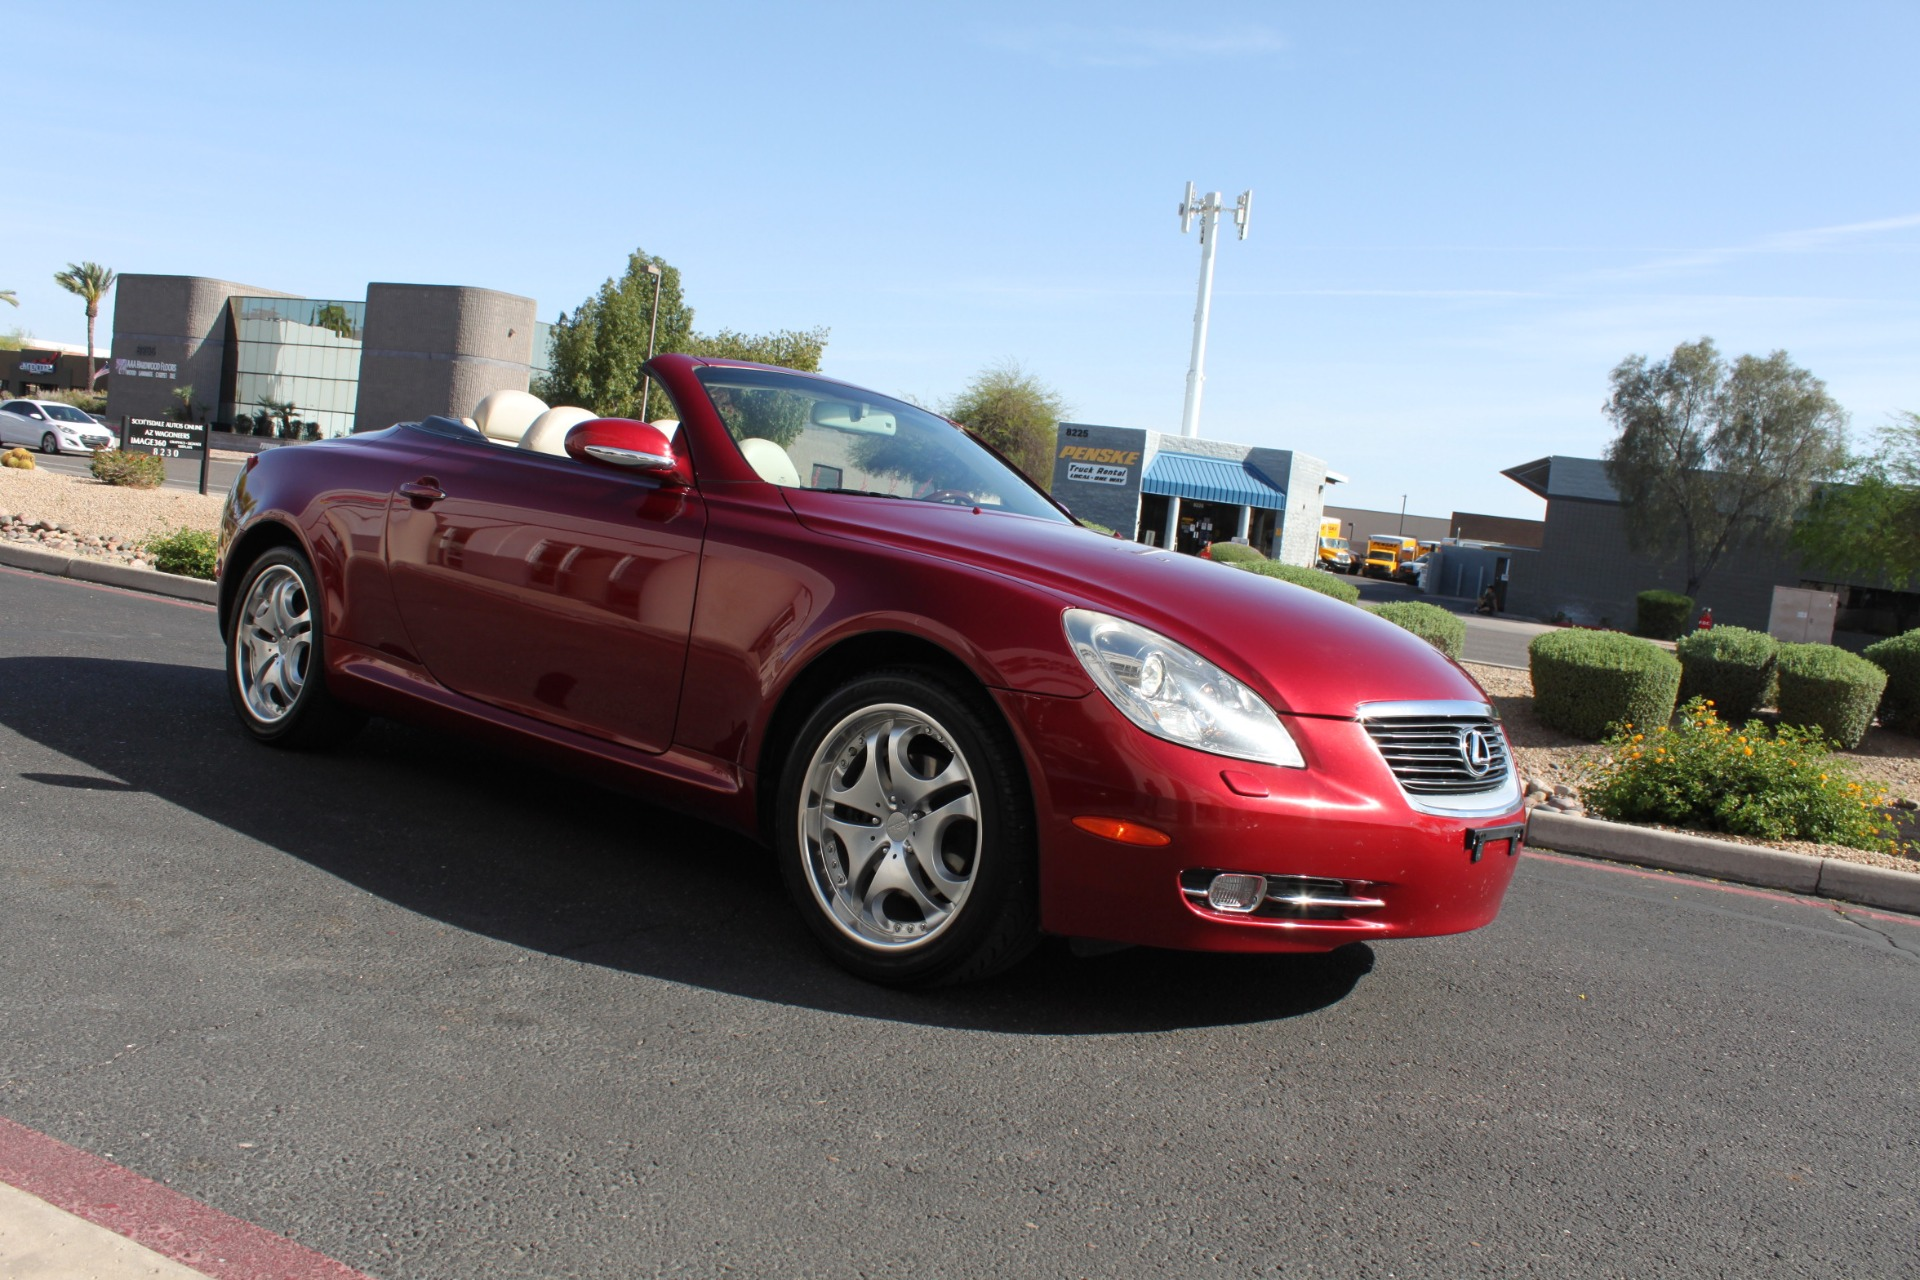 Used-2006-Lexus-SC-430-Mini